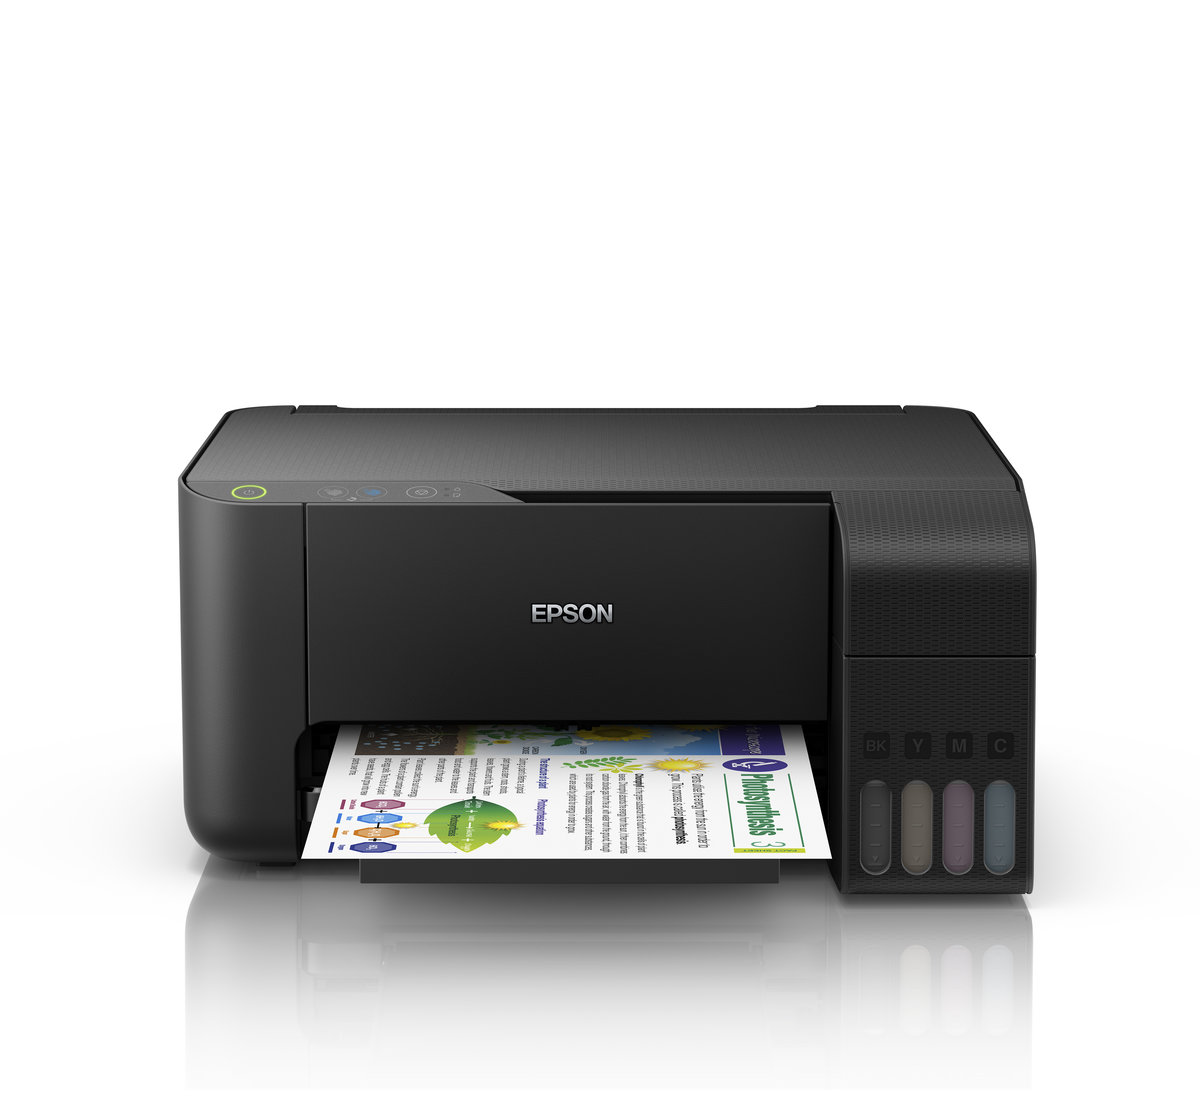 EPSON L3150 PSC ITS. A4/33/5760dpi/USB-WiFi Πολυμηχάνημα Dye